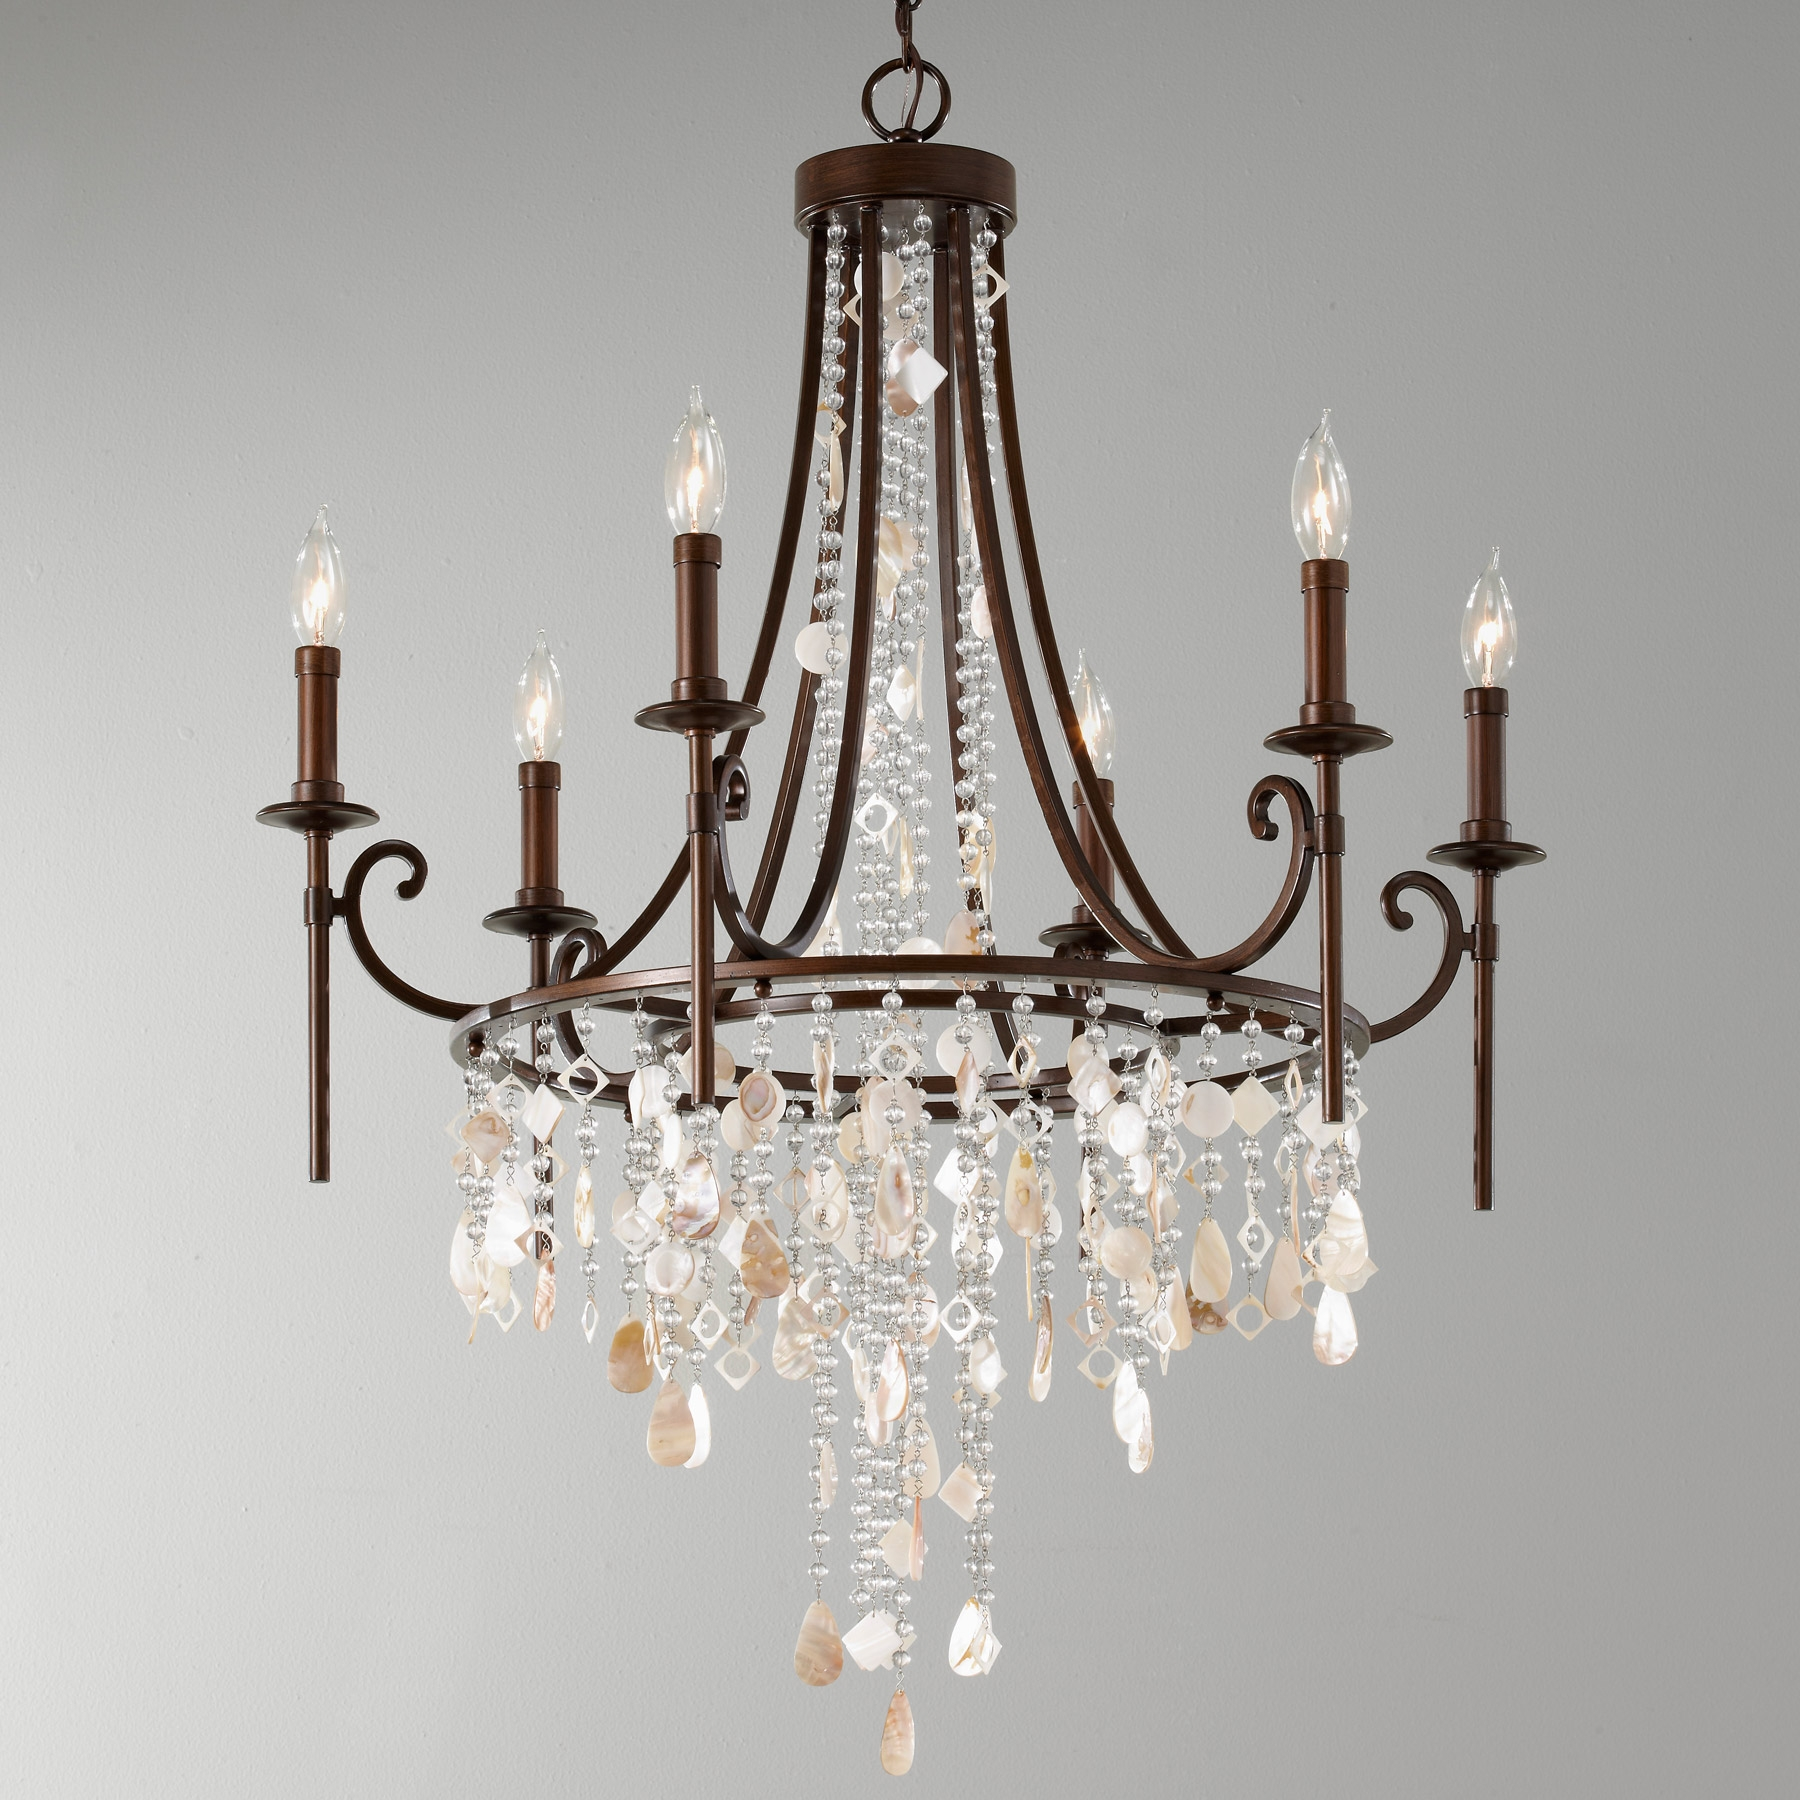 Murray Feiss Cascade Collection Lamps Beautiful Intended For Feiss Chandeliers (Image 15 of 25)